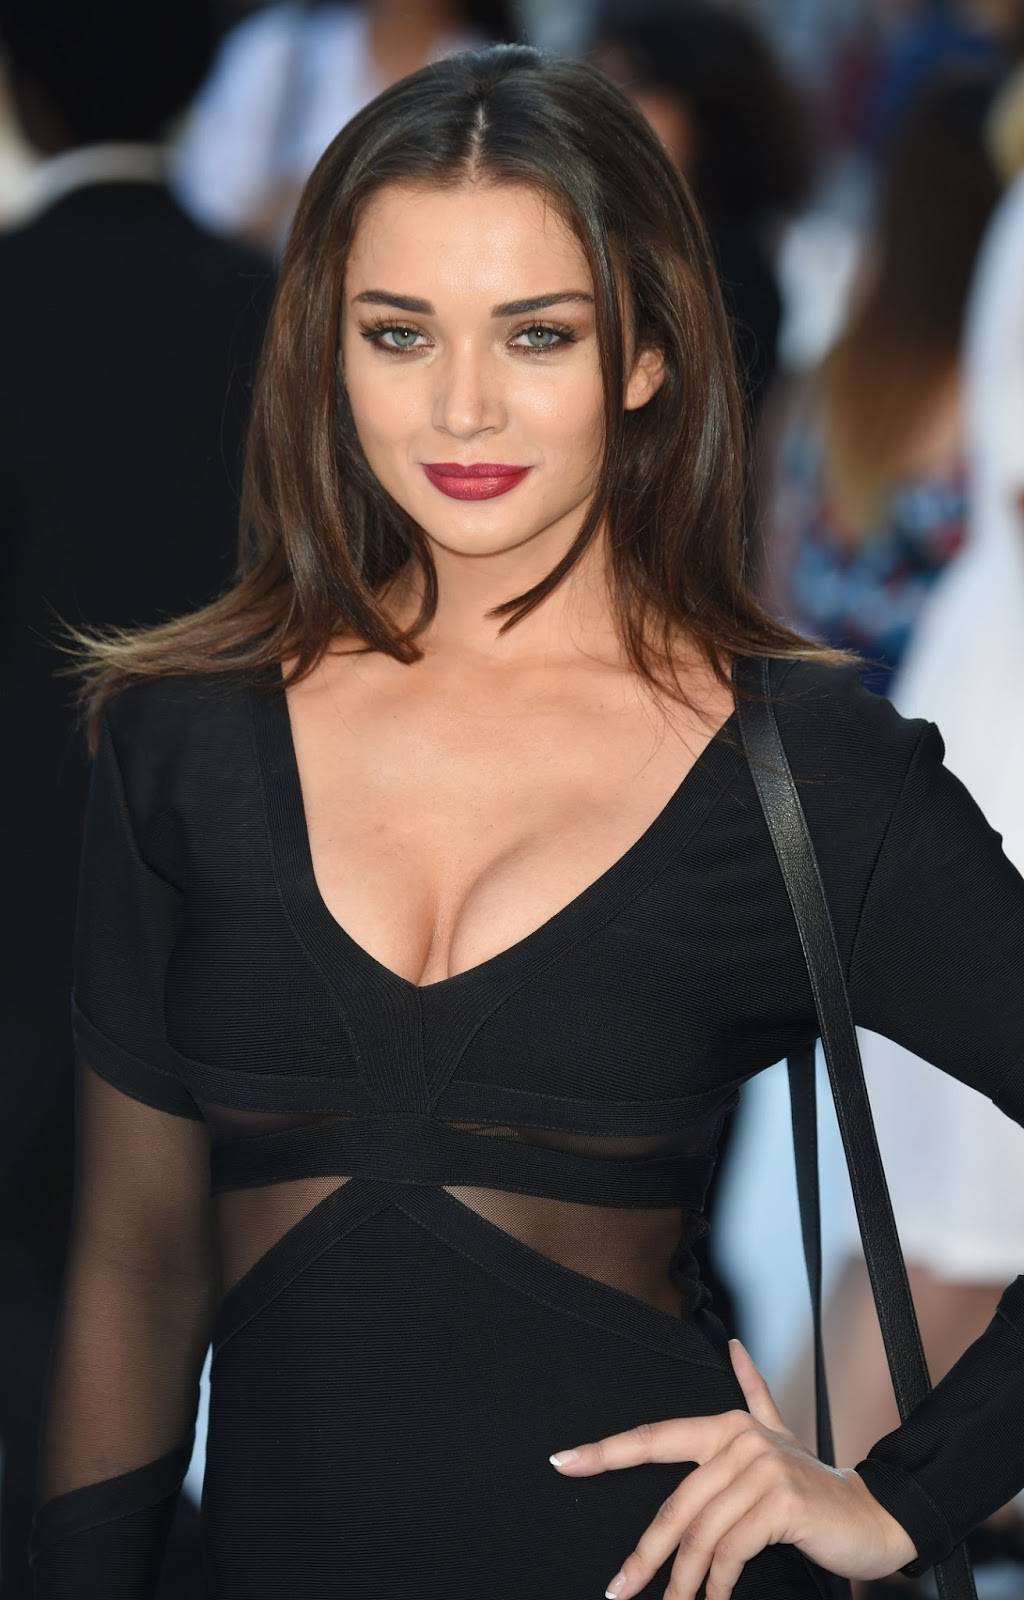 Actress Amy Jackson Hot Photos In Black Dress